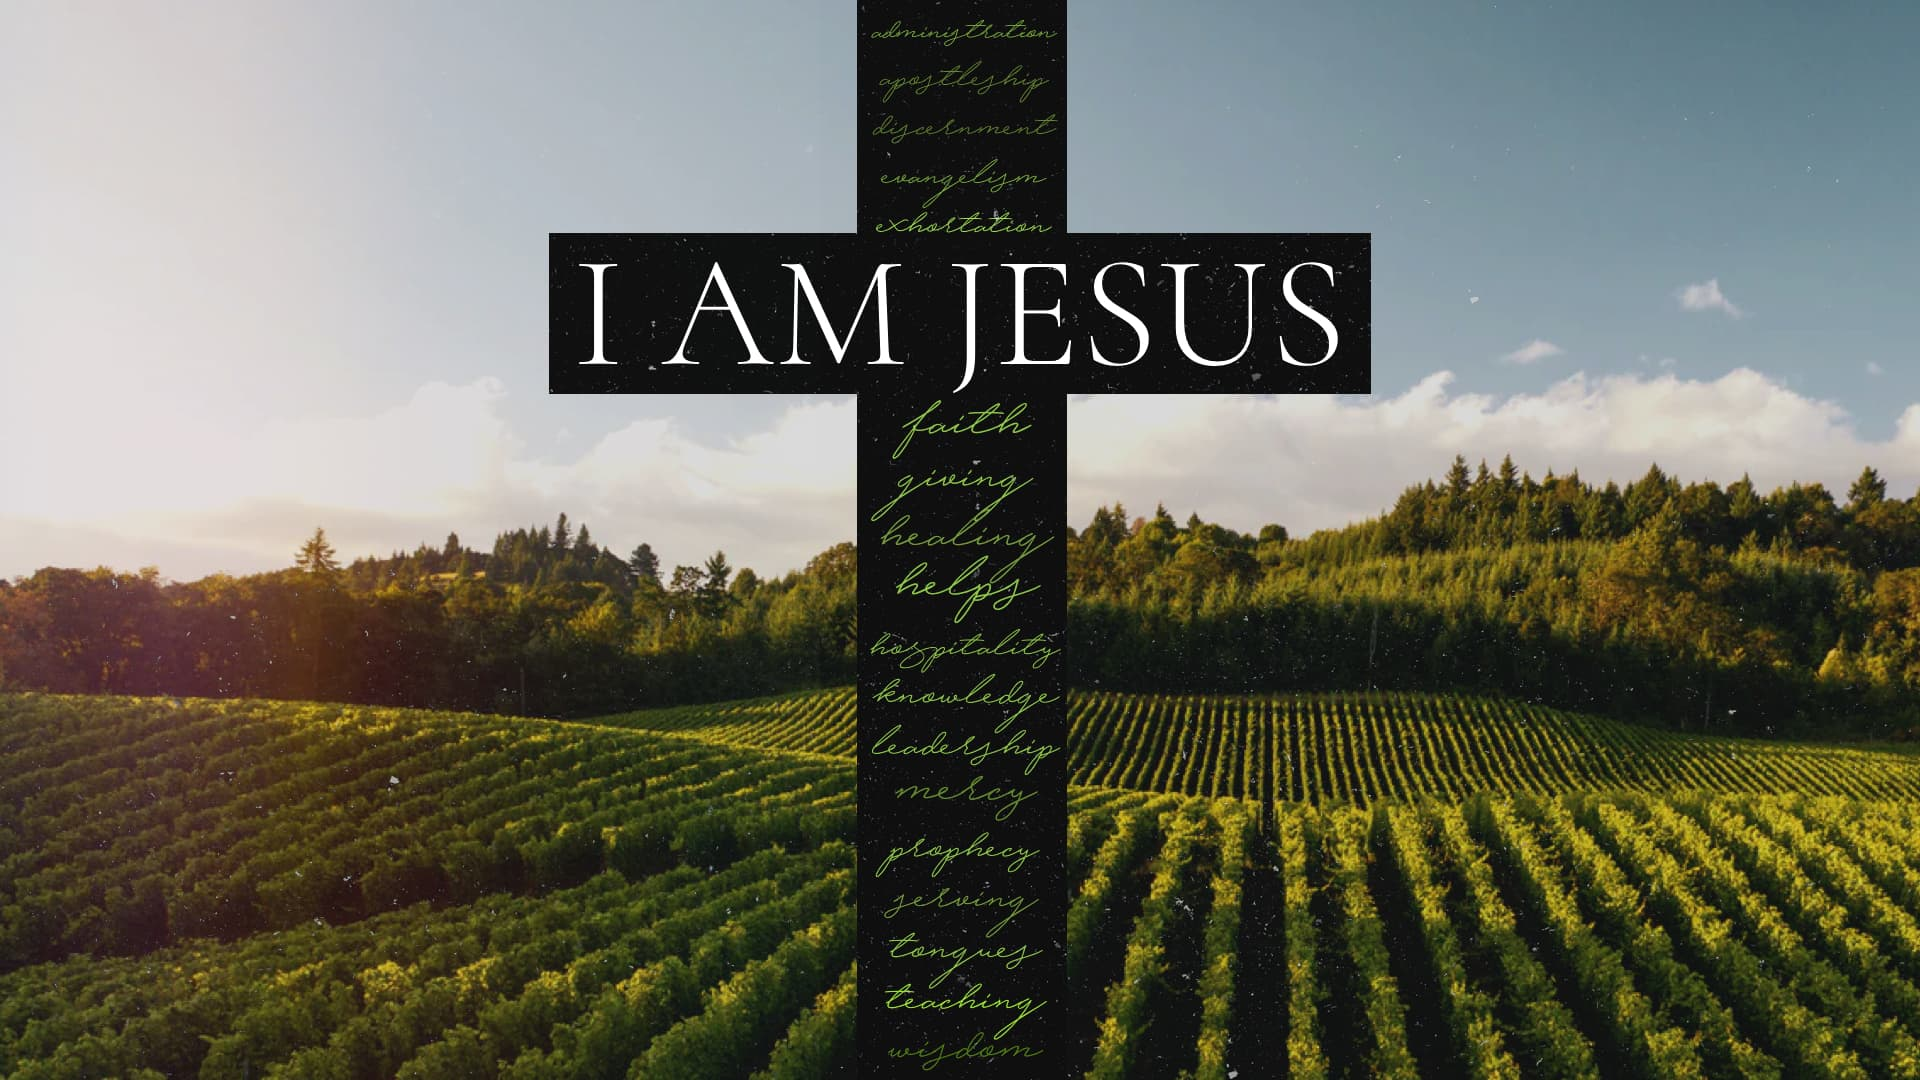 I Am Jesus: I Am the Bread of Life / John 6:32-35